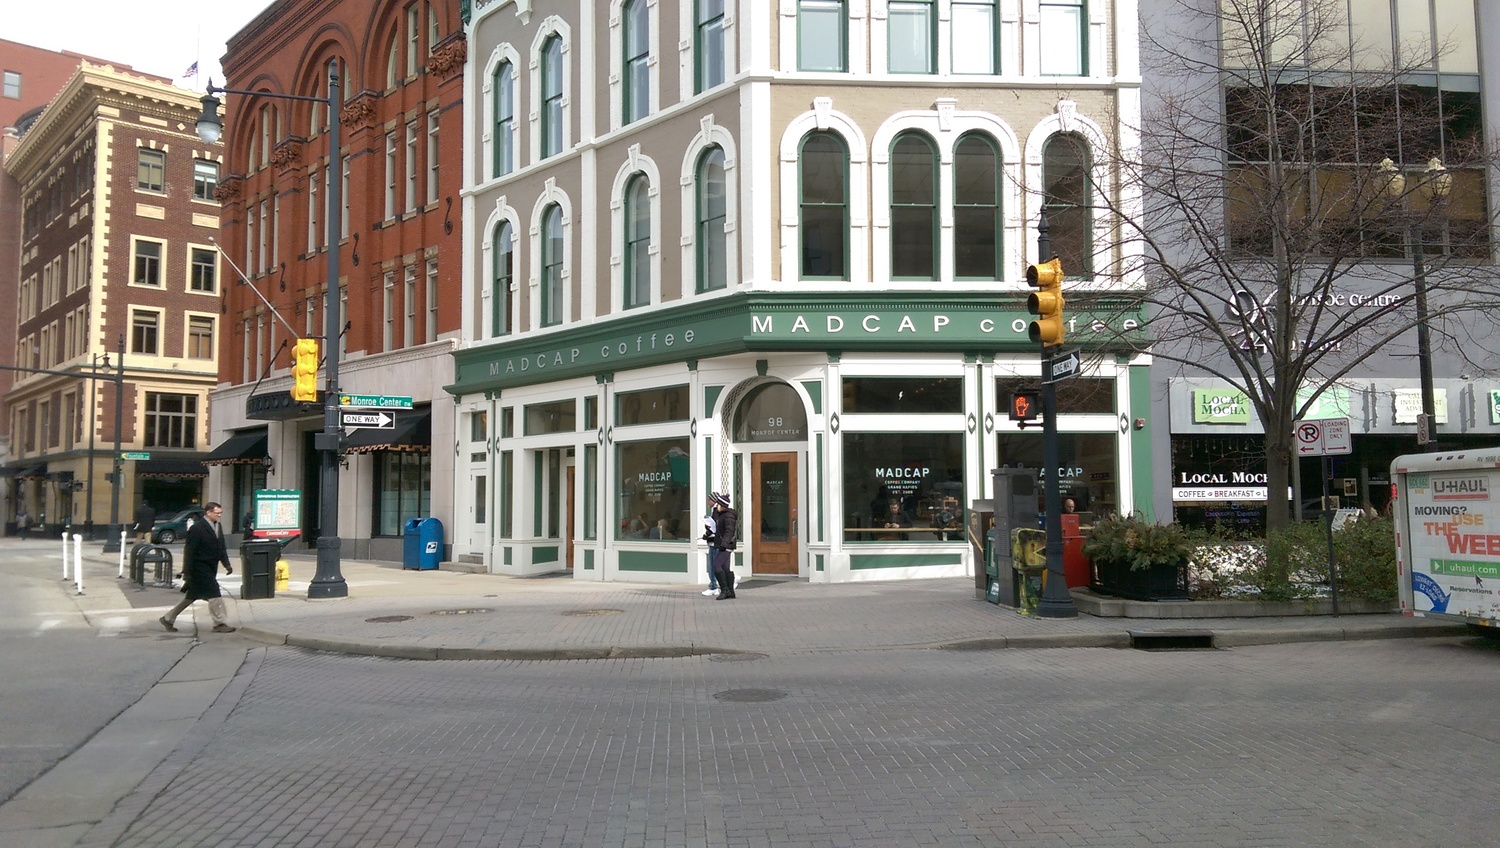 MadCap Coffee, a mainstay in the heart of downtown G.R.